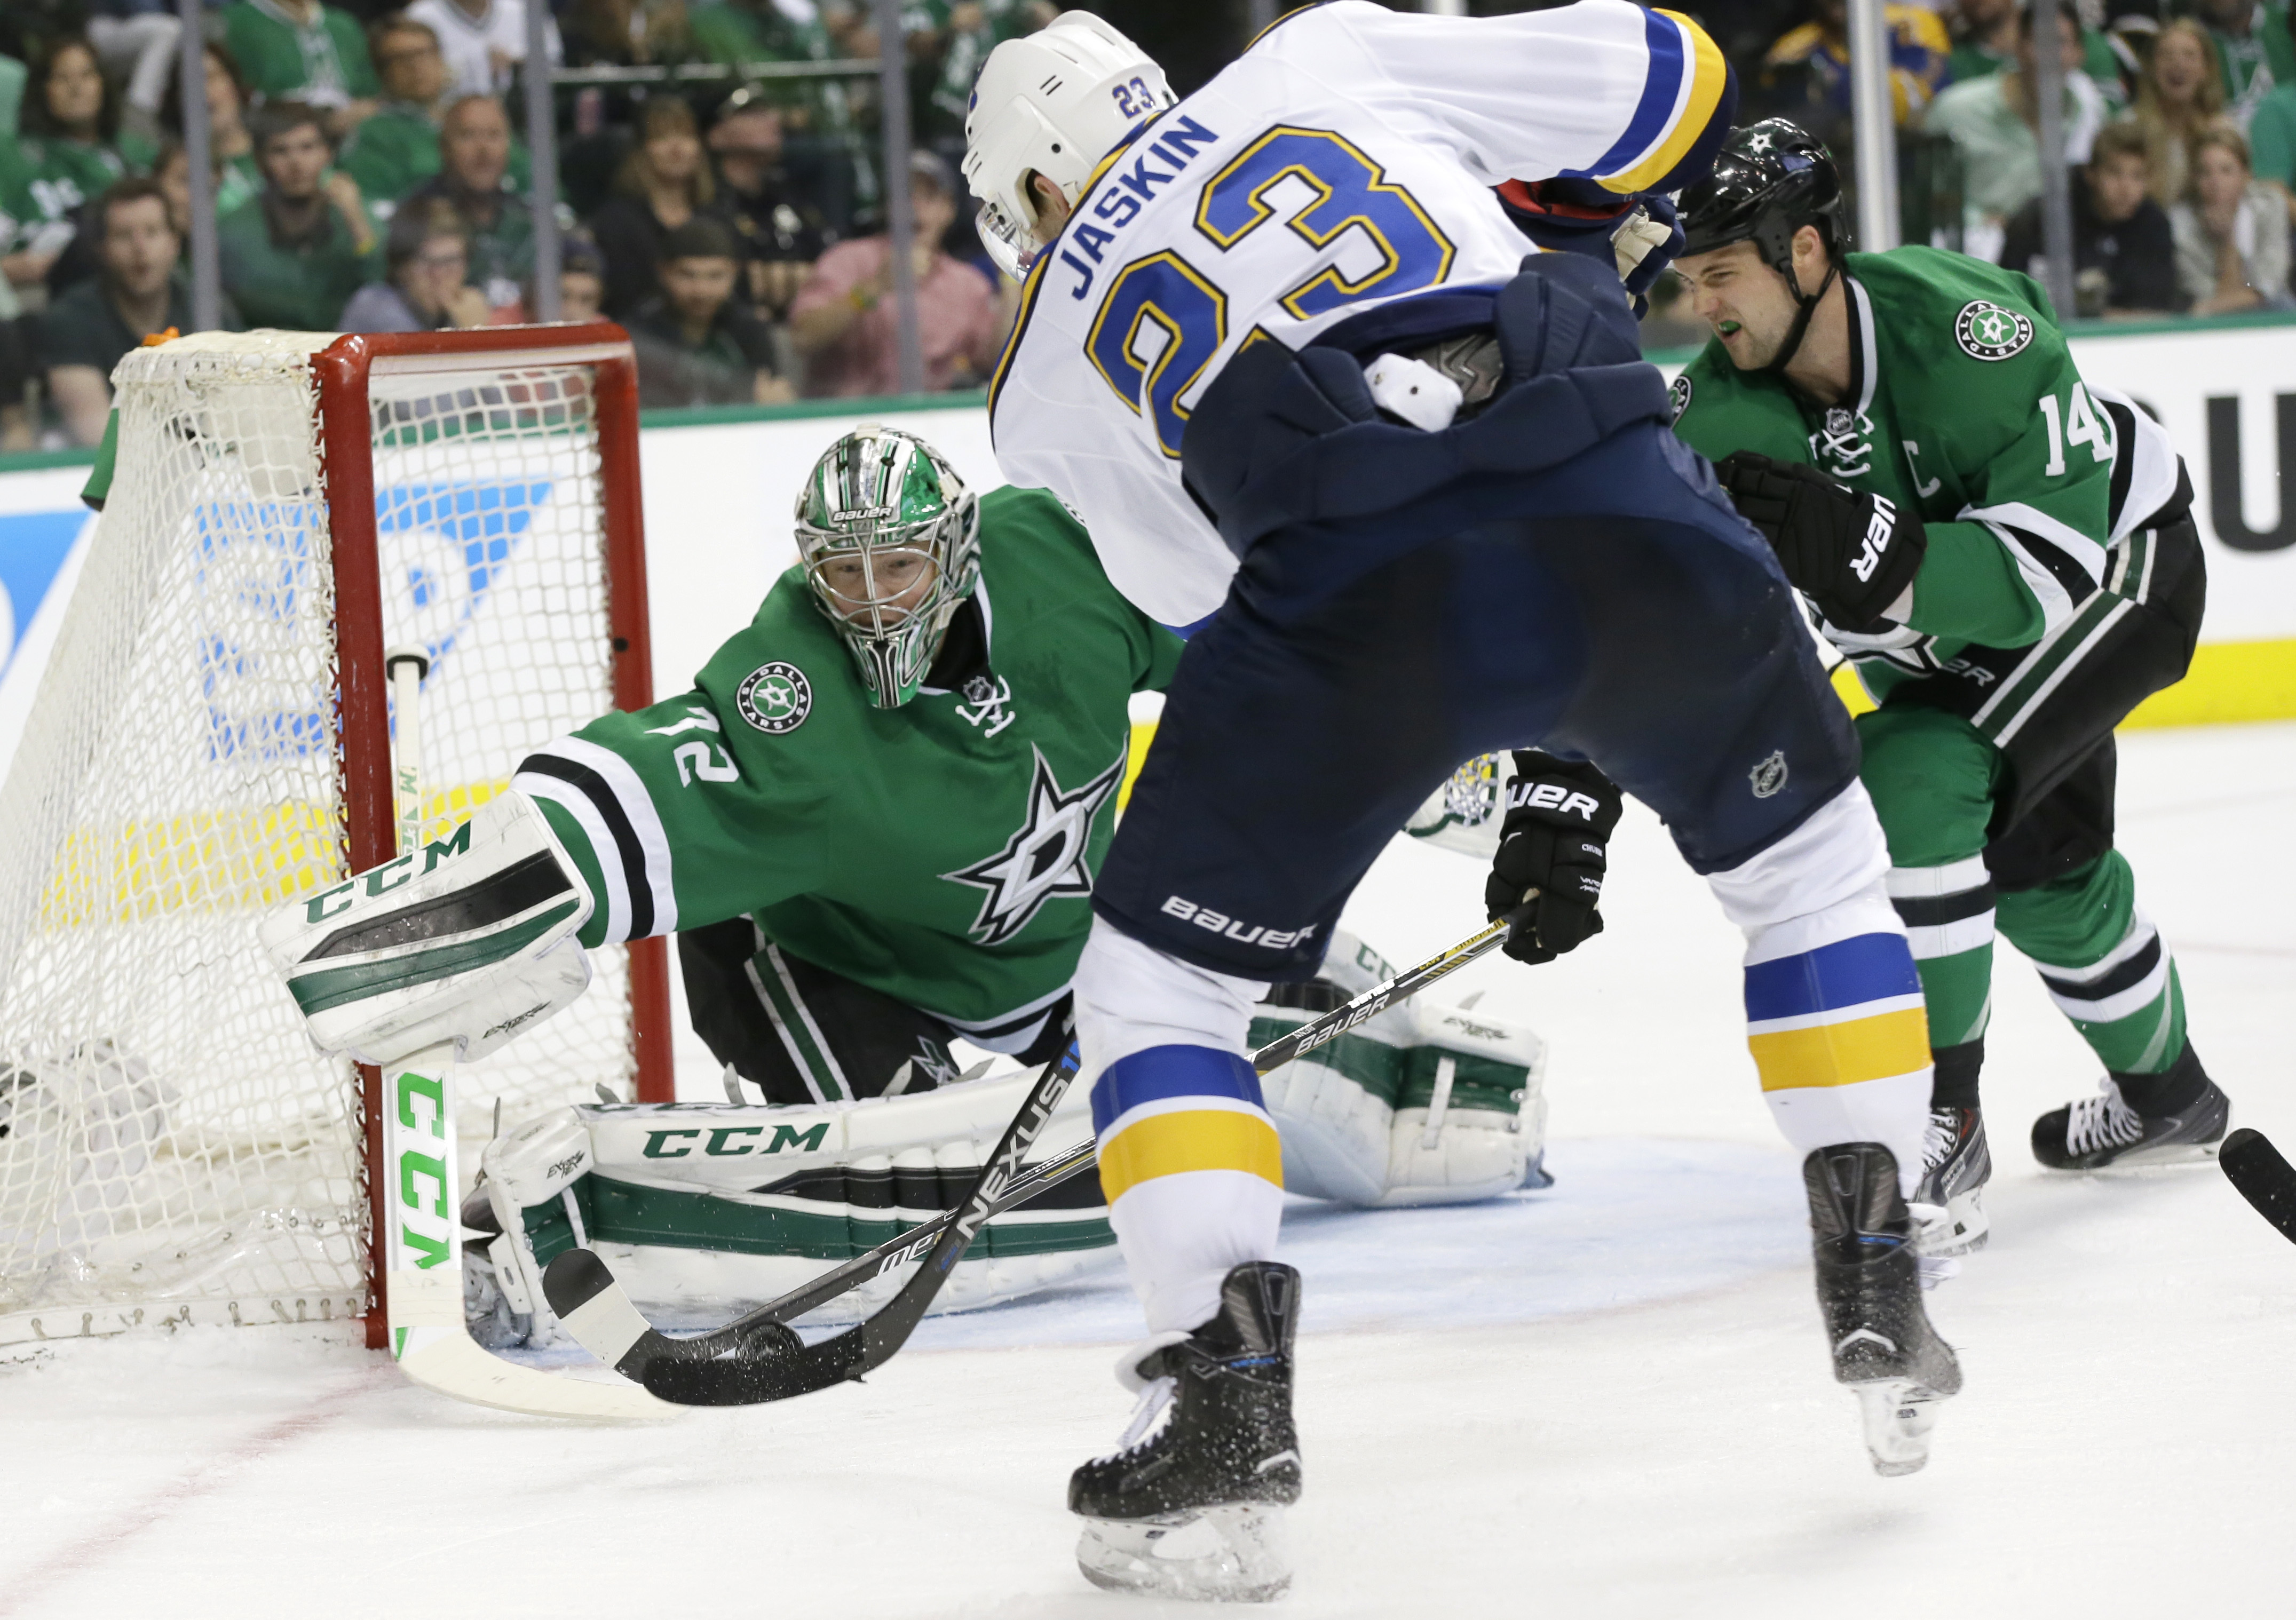 St. Louis Blues right wing Dmitrij Jaskin (23) scores a goal against Dallas Stars goalie Kari Lehtonen (32) and left wing Jamie Benn (14) during the second period of Game 5 of the NHL hockey Stanley Cup playoffs Western Conference semifinals Saturday, May